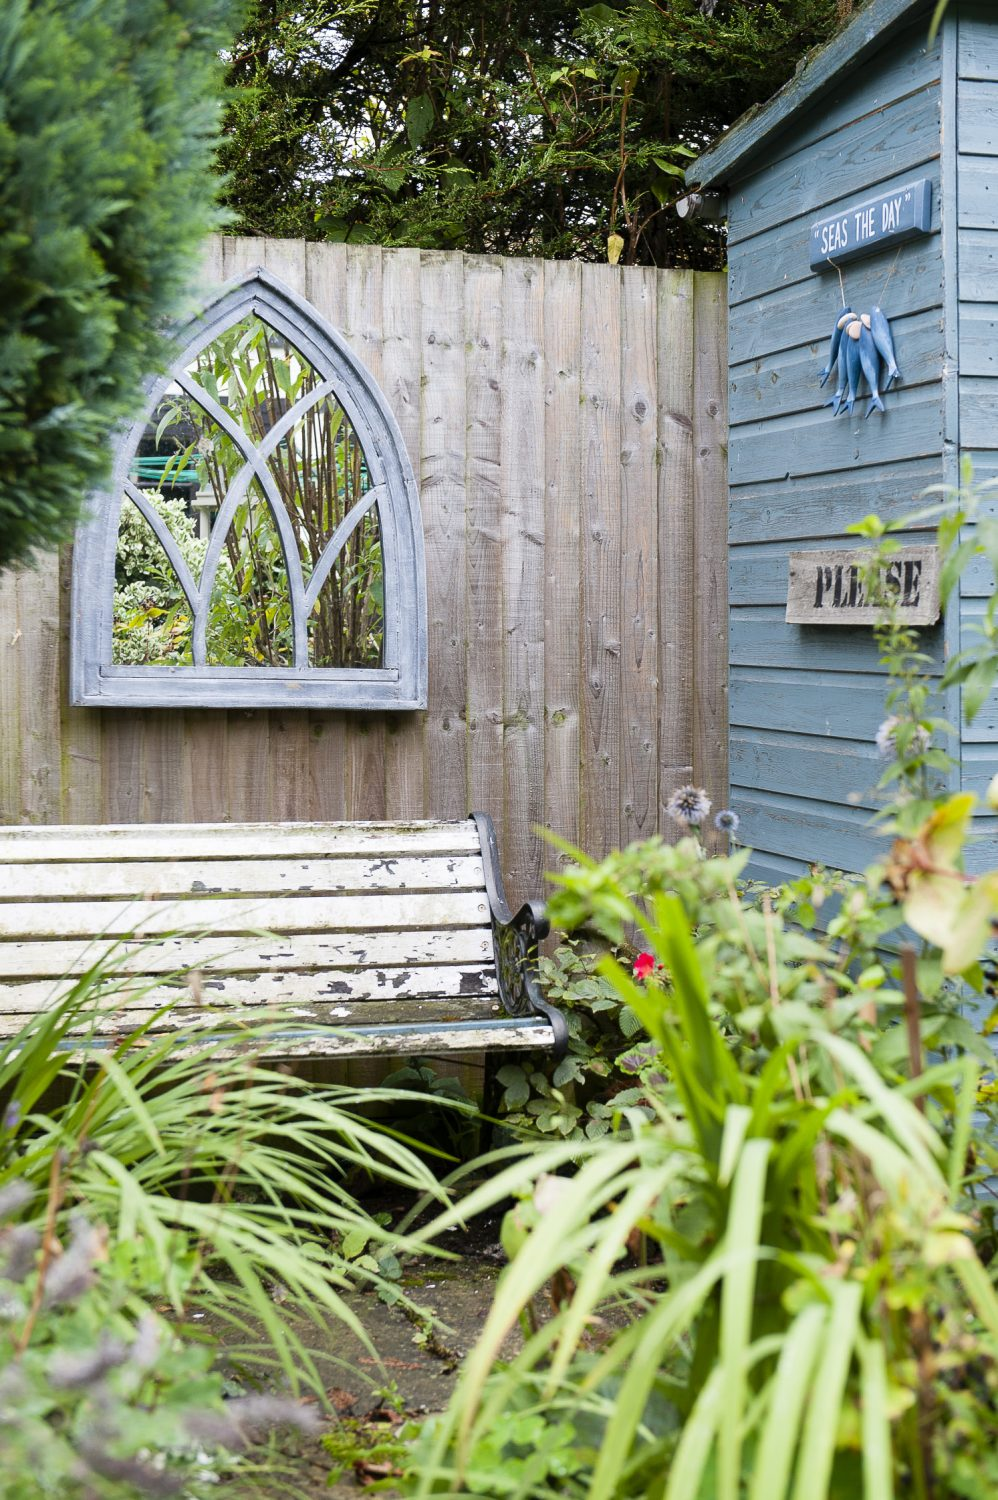 A secluded and tranquil seating area, concealed by borders, can be found at the back of the garden